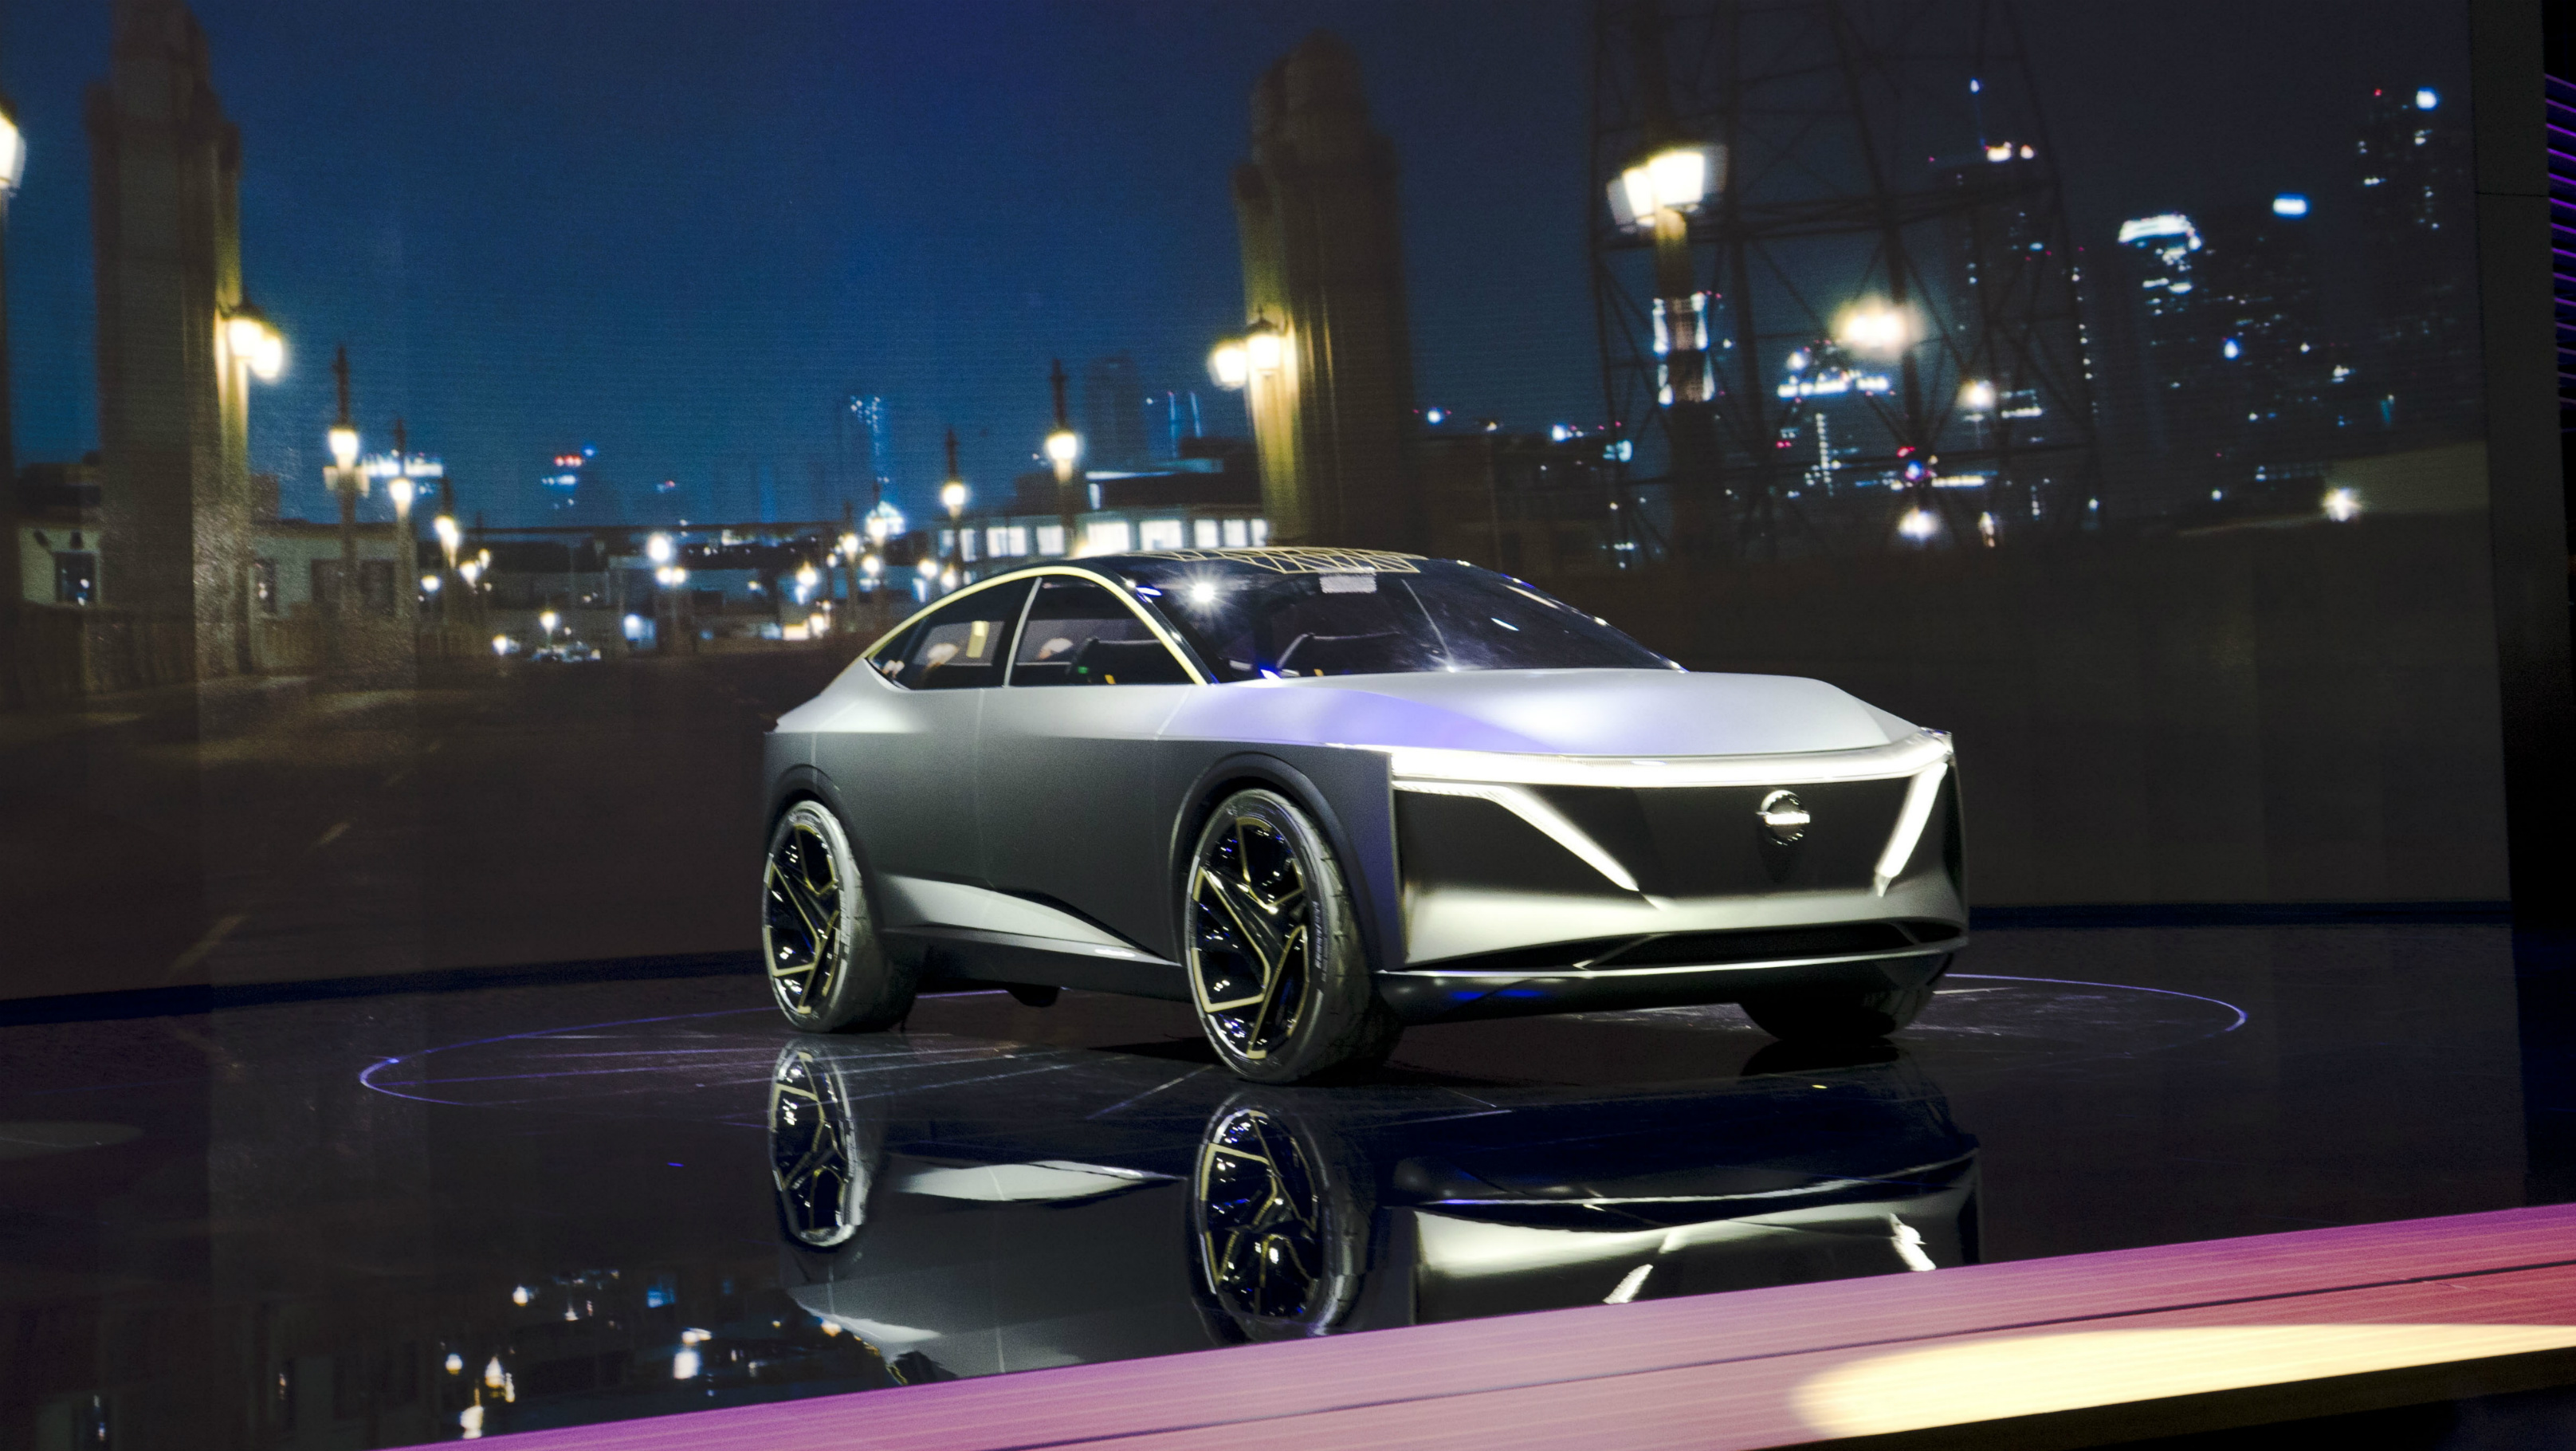 Nissan's IMs Concept is Their Electric Autonomous Car of the Future